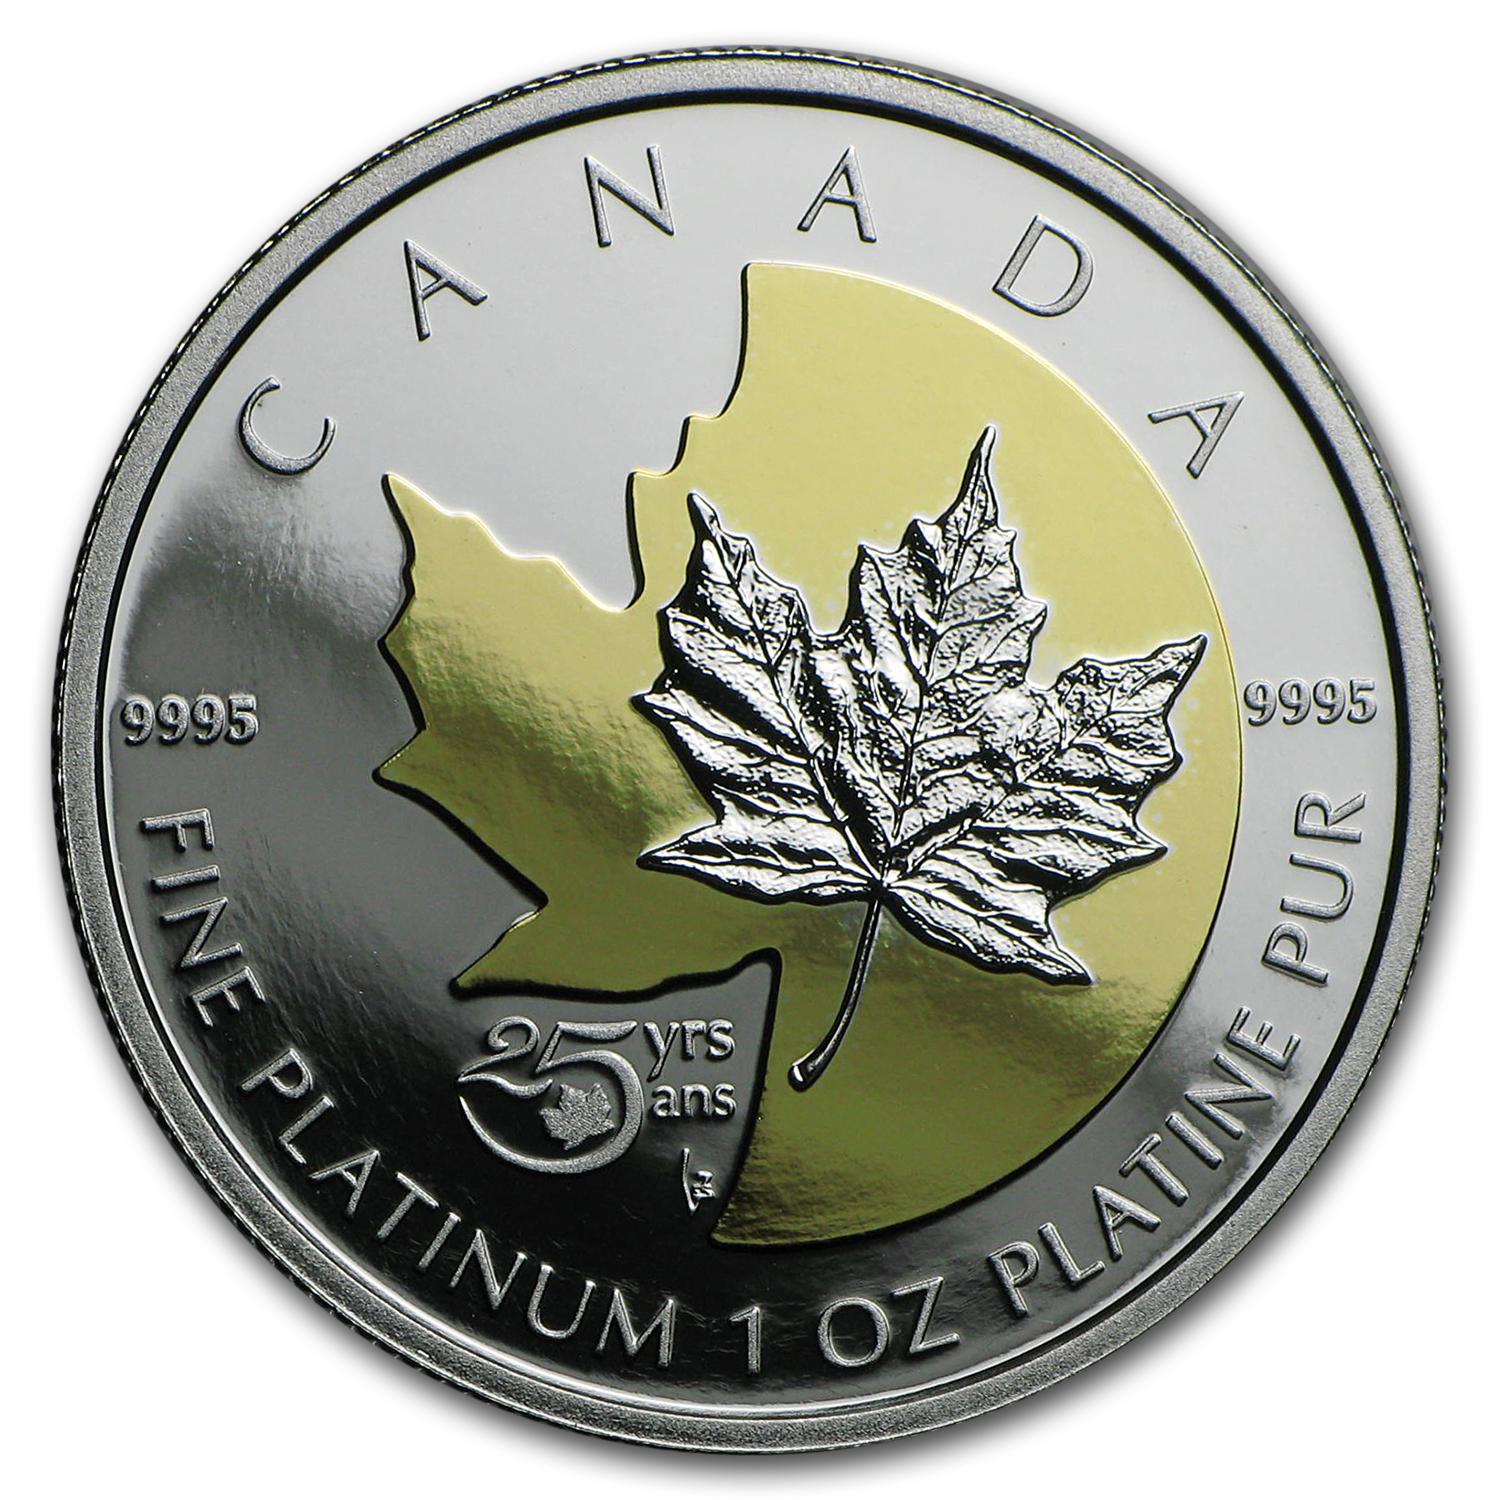 2013 1 oz Platinum Canadian $300 - 25th Anniv. of the Plat. Maple